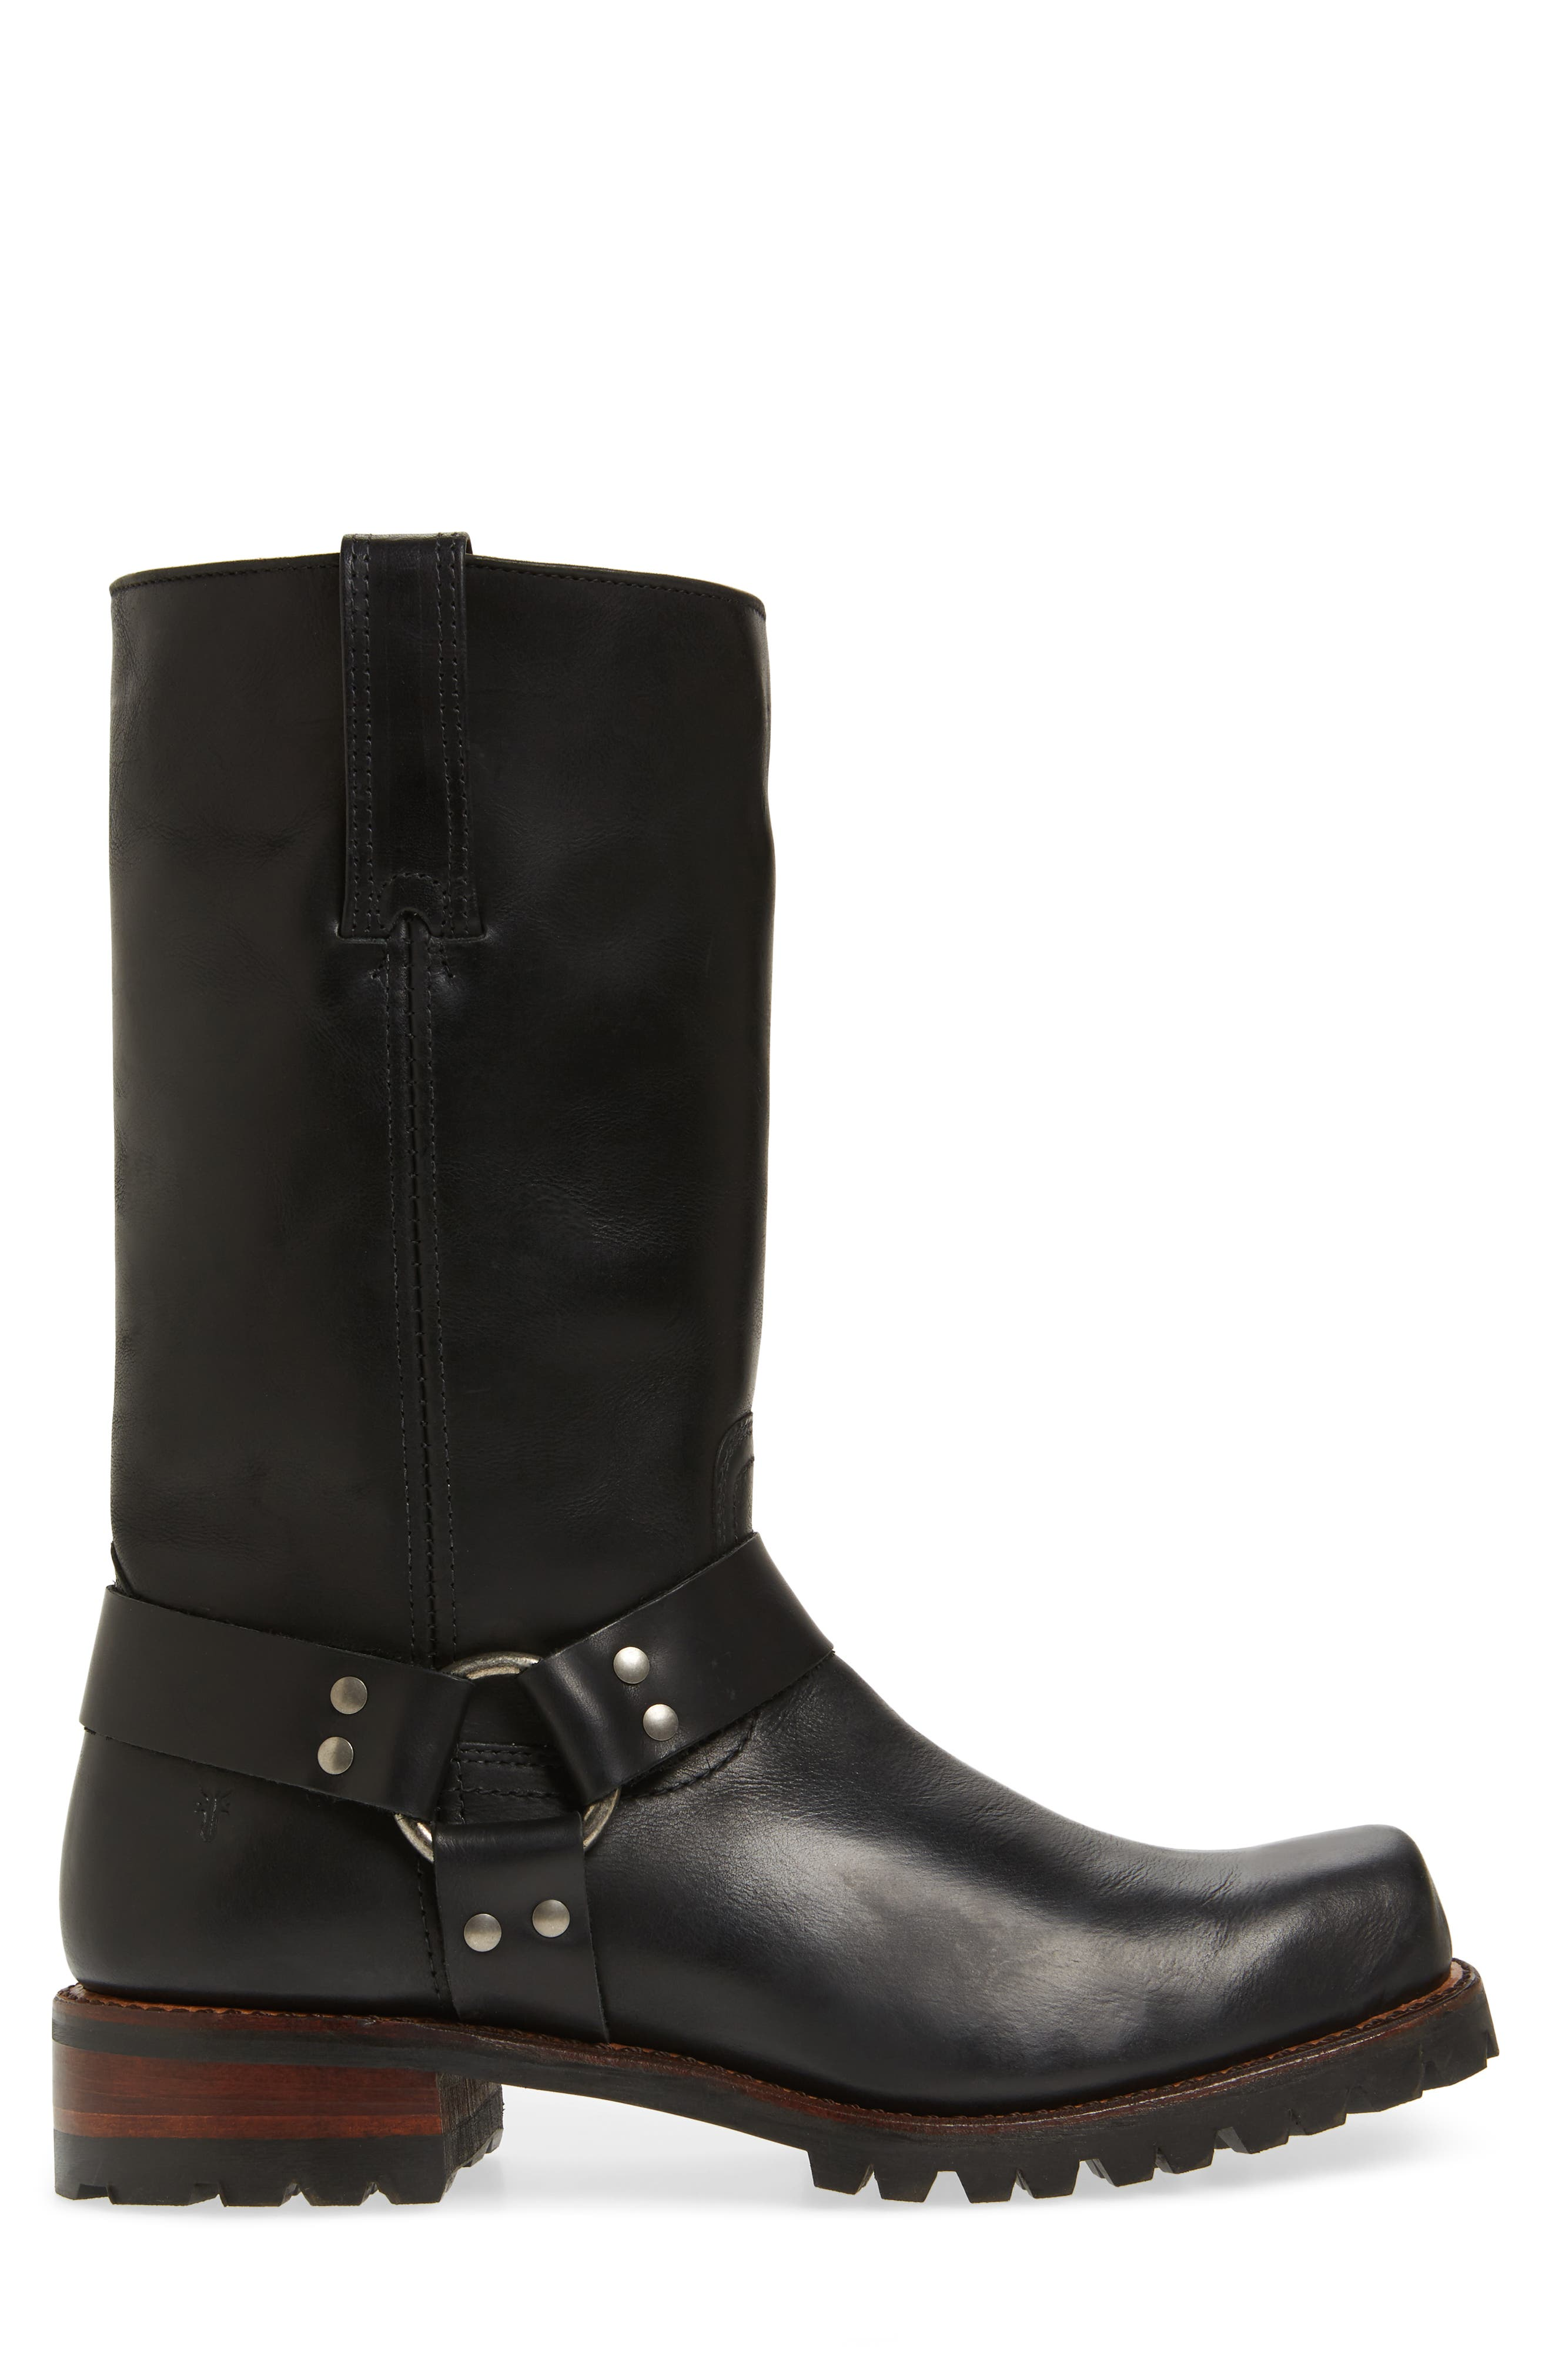 Addison Waterproof Harness Boot,                             Alternate thumbnail 3, color,                             Black Leather